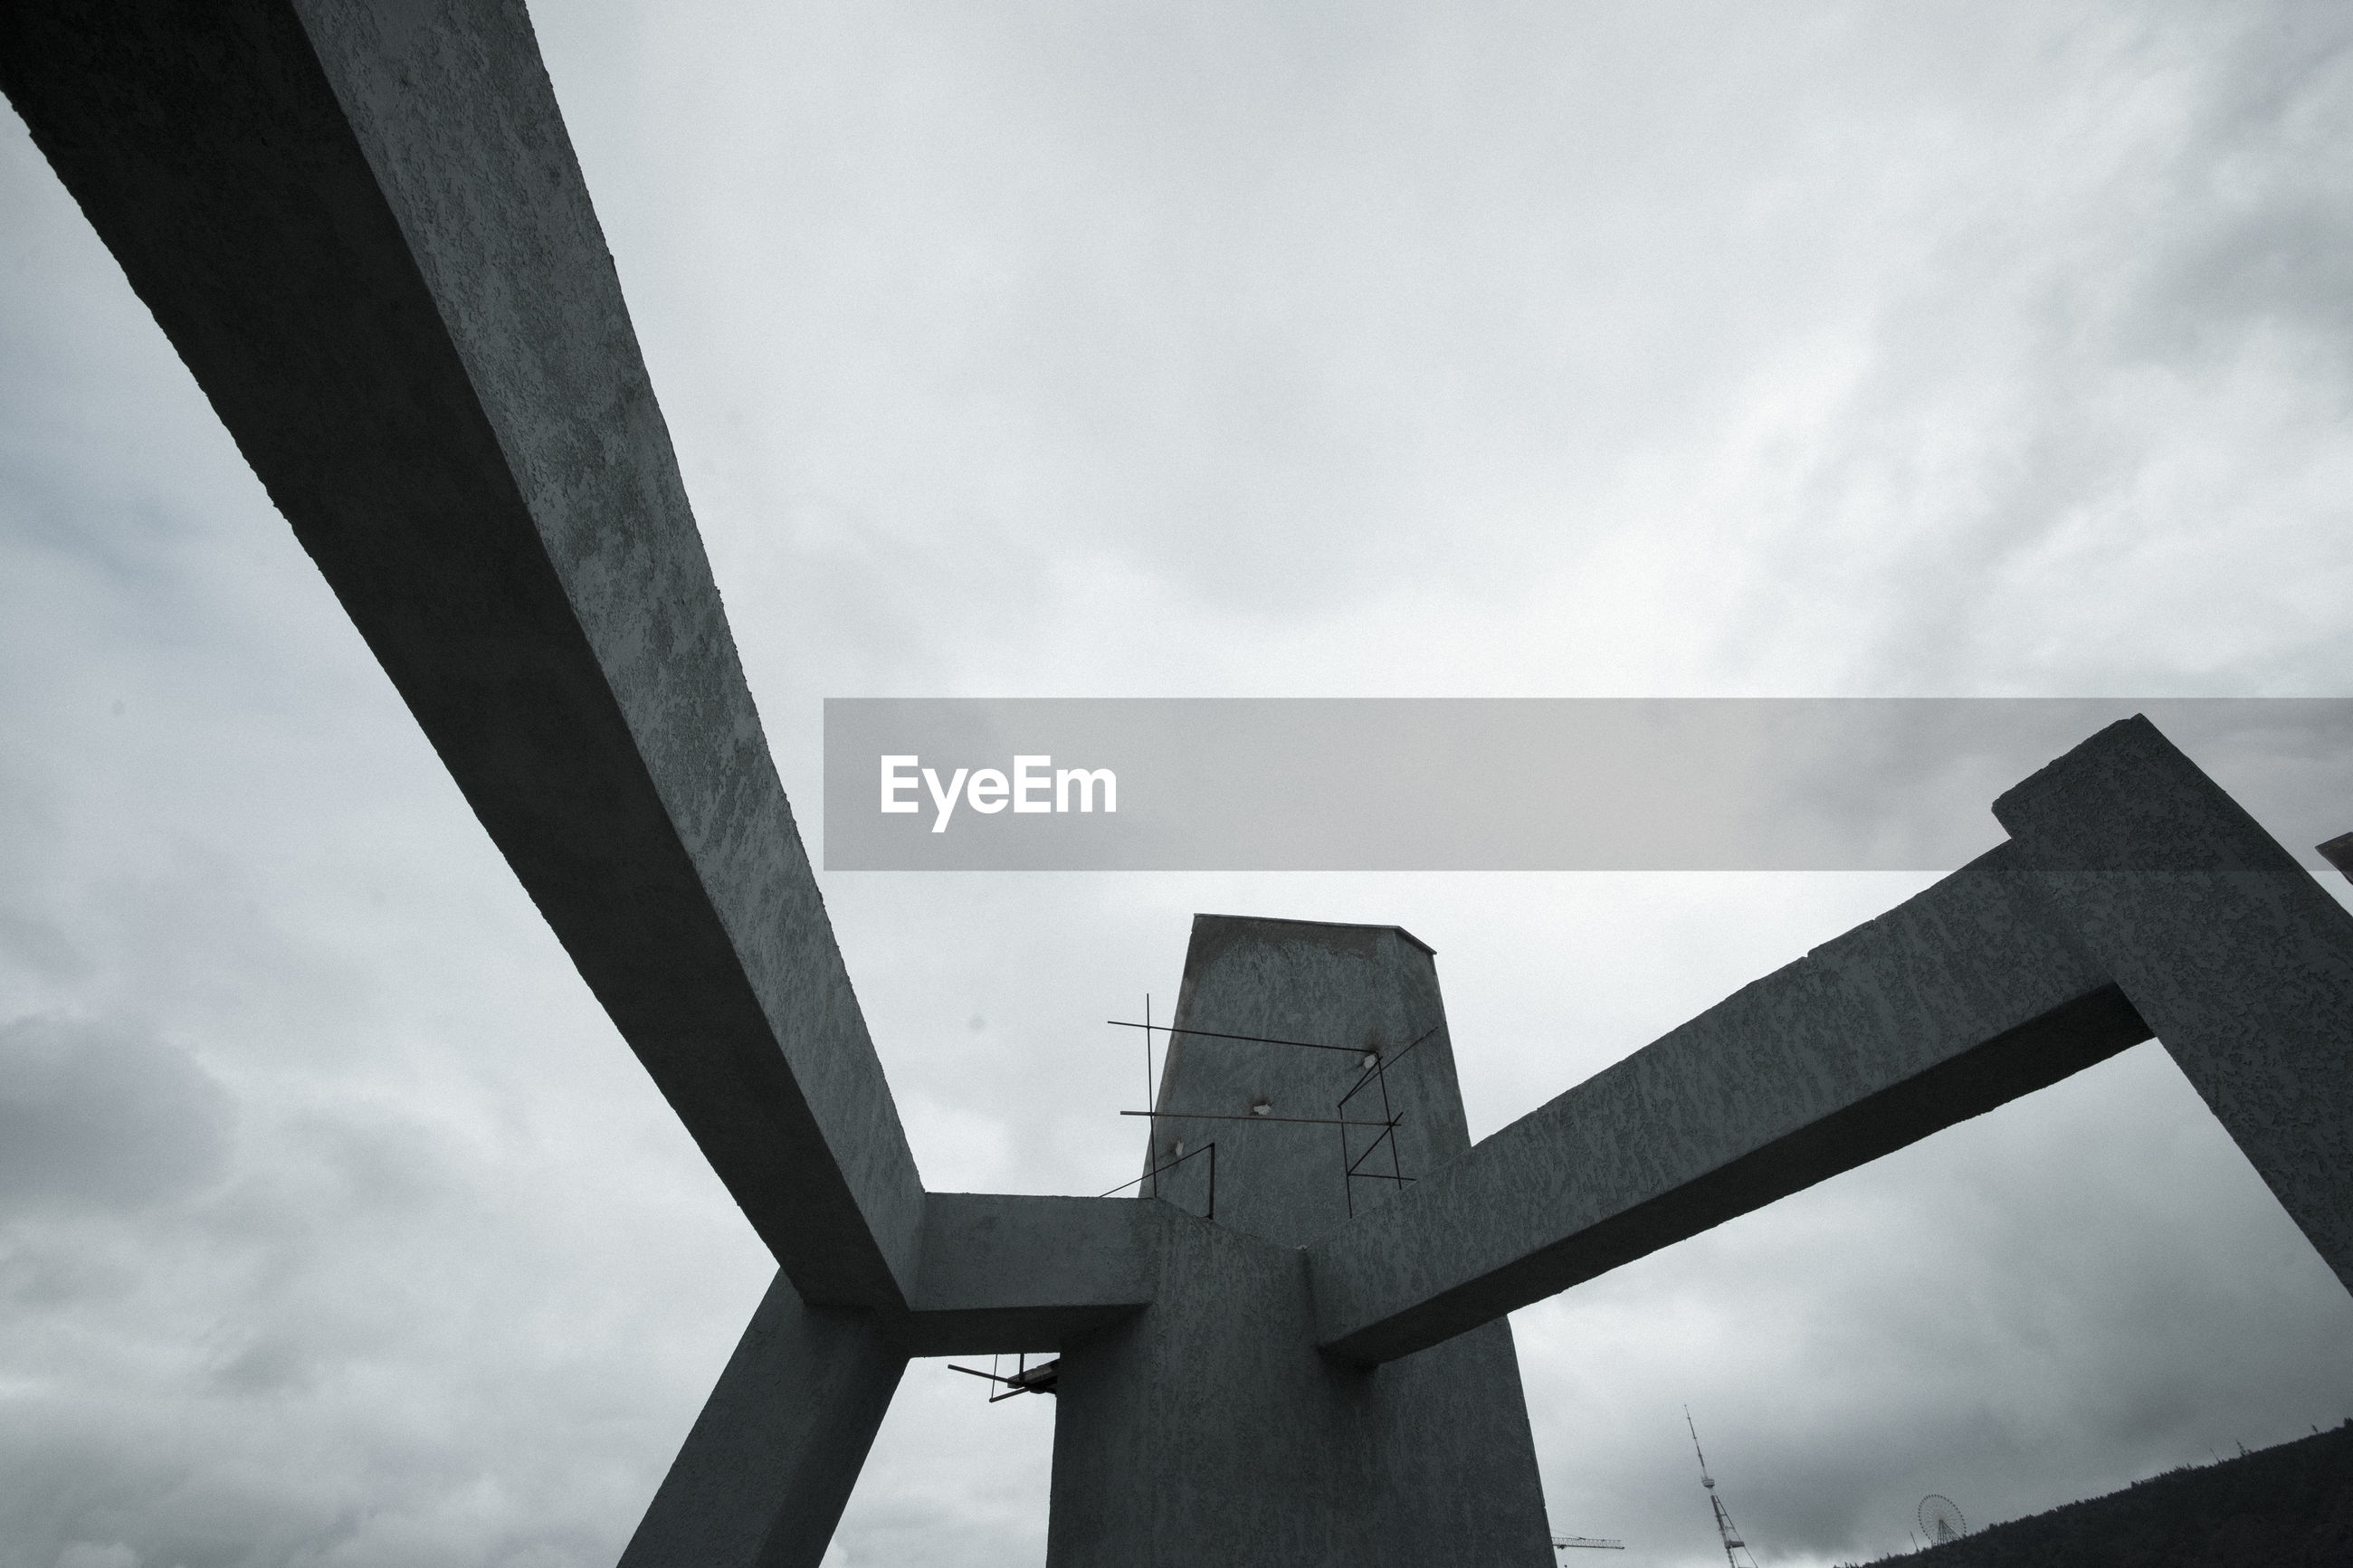 LOW ANGLE VIEW OF CROSS BRIDGE AGAINST SKY